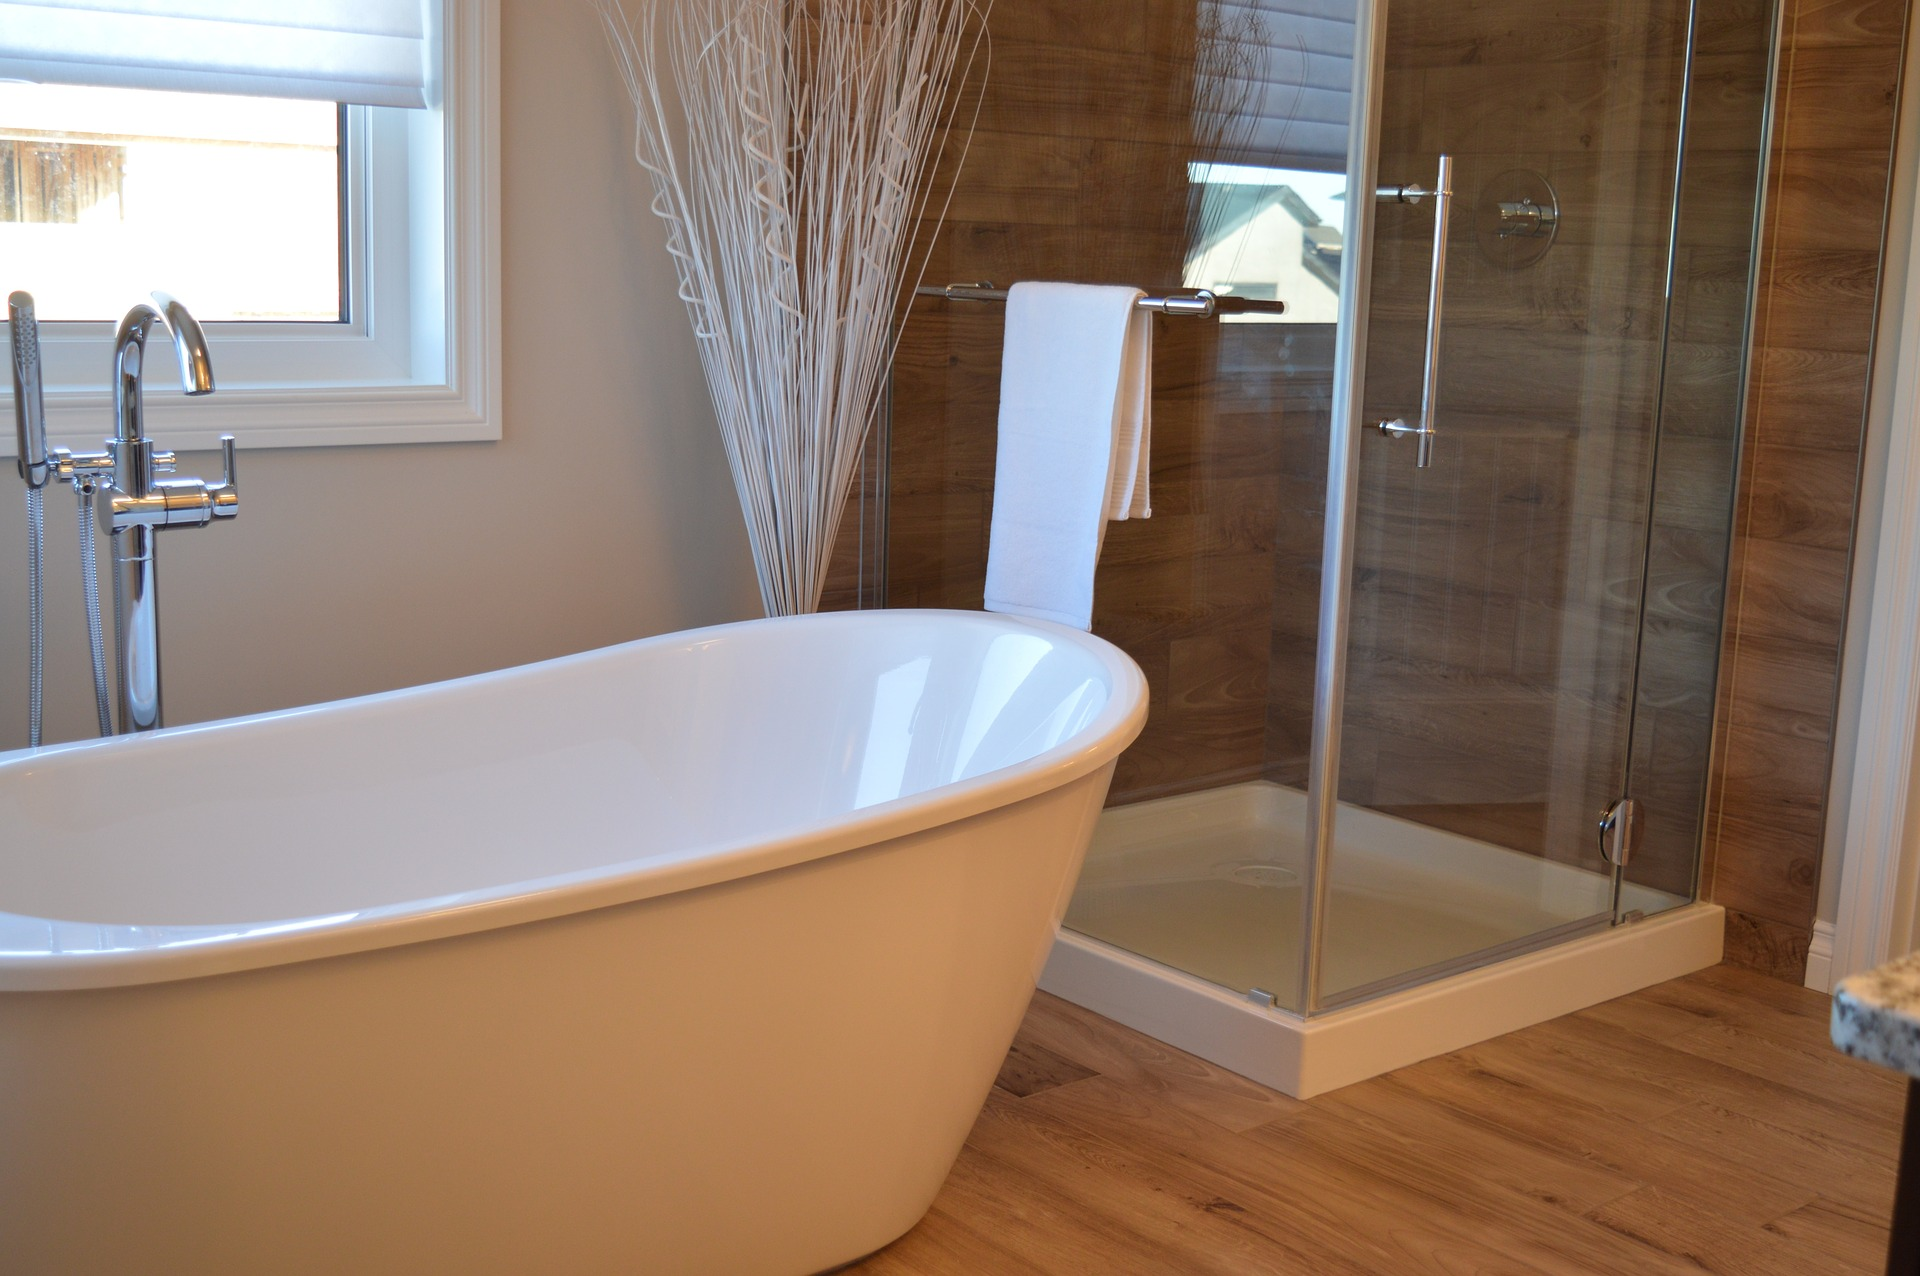 Bathroom Remodeling Scottsdale AZ. Bathroom Remodeling Scottsdale AZ   Champion Remodeling  LLC